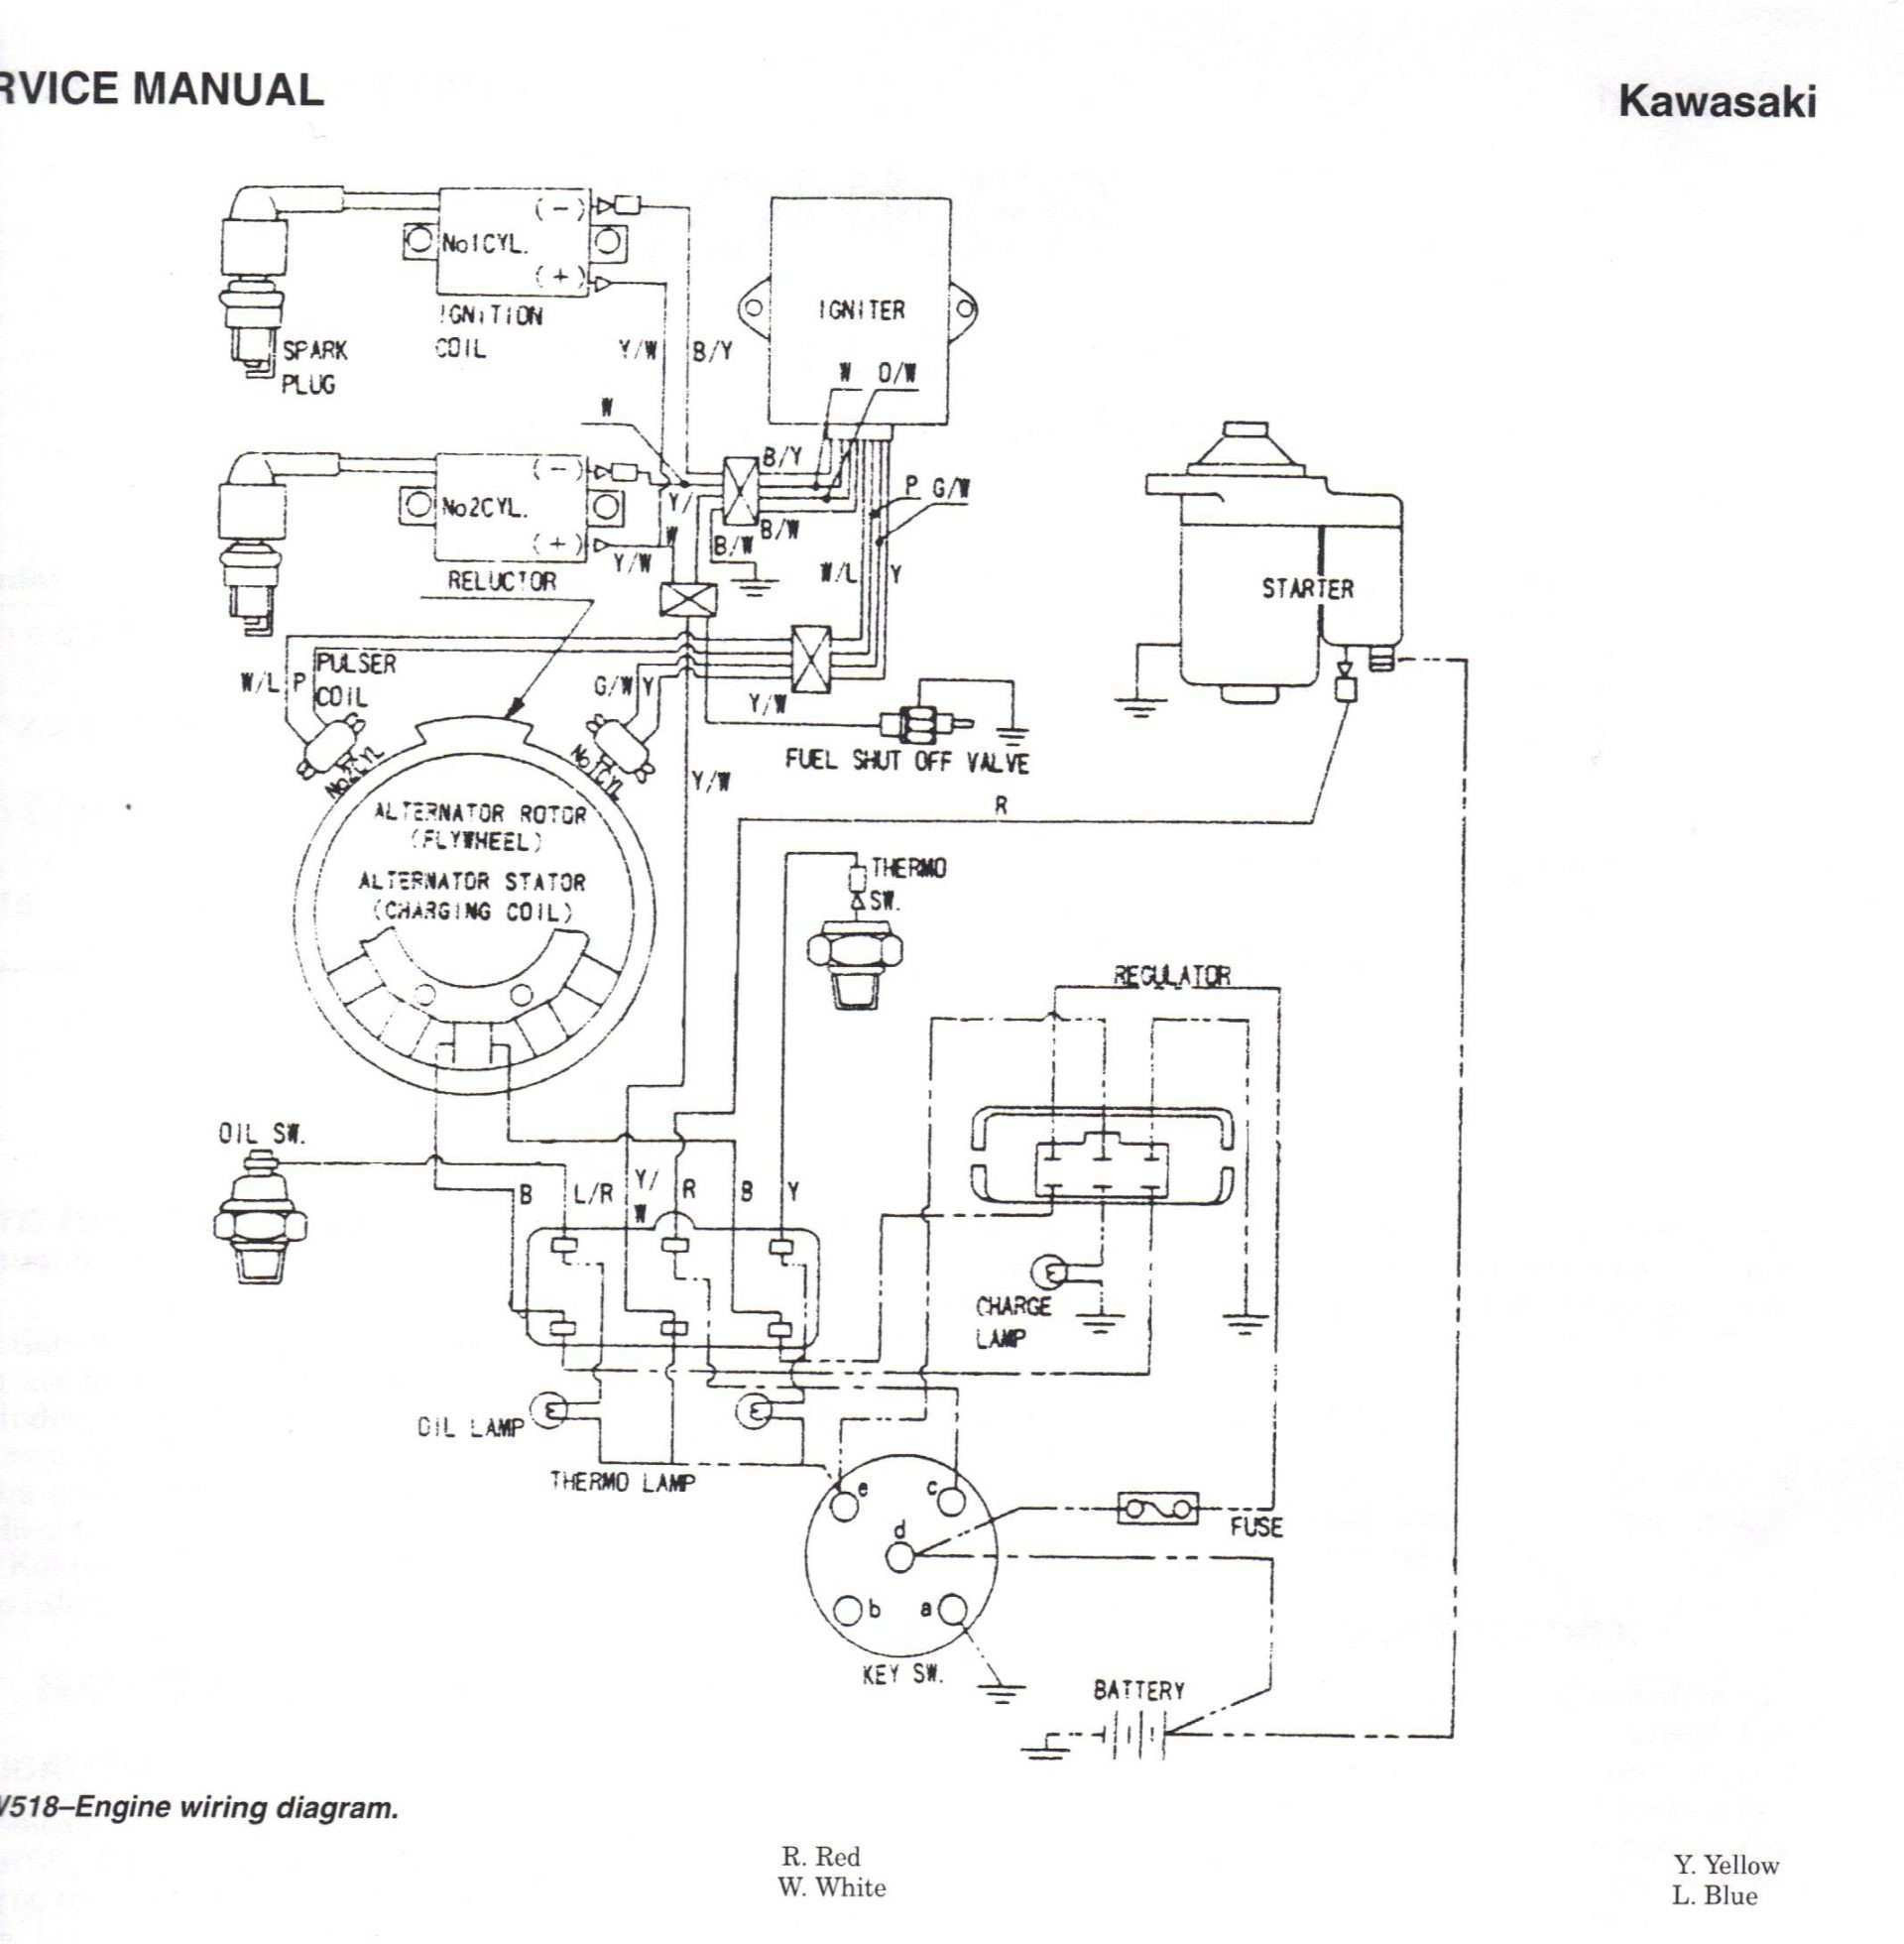 Telephone Jack Wiring Instructions Free Download Wiring Diagram